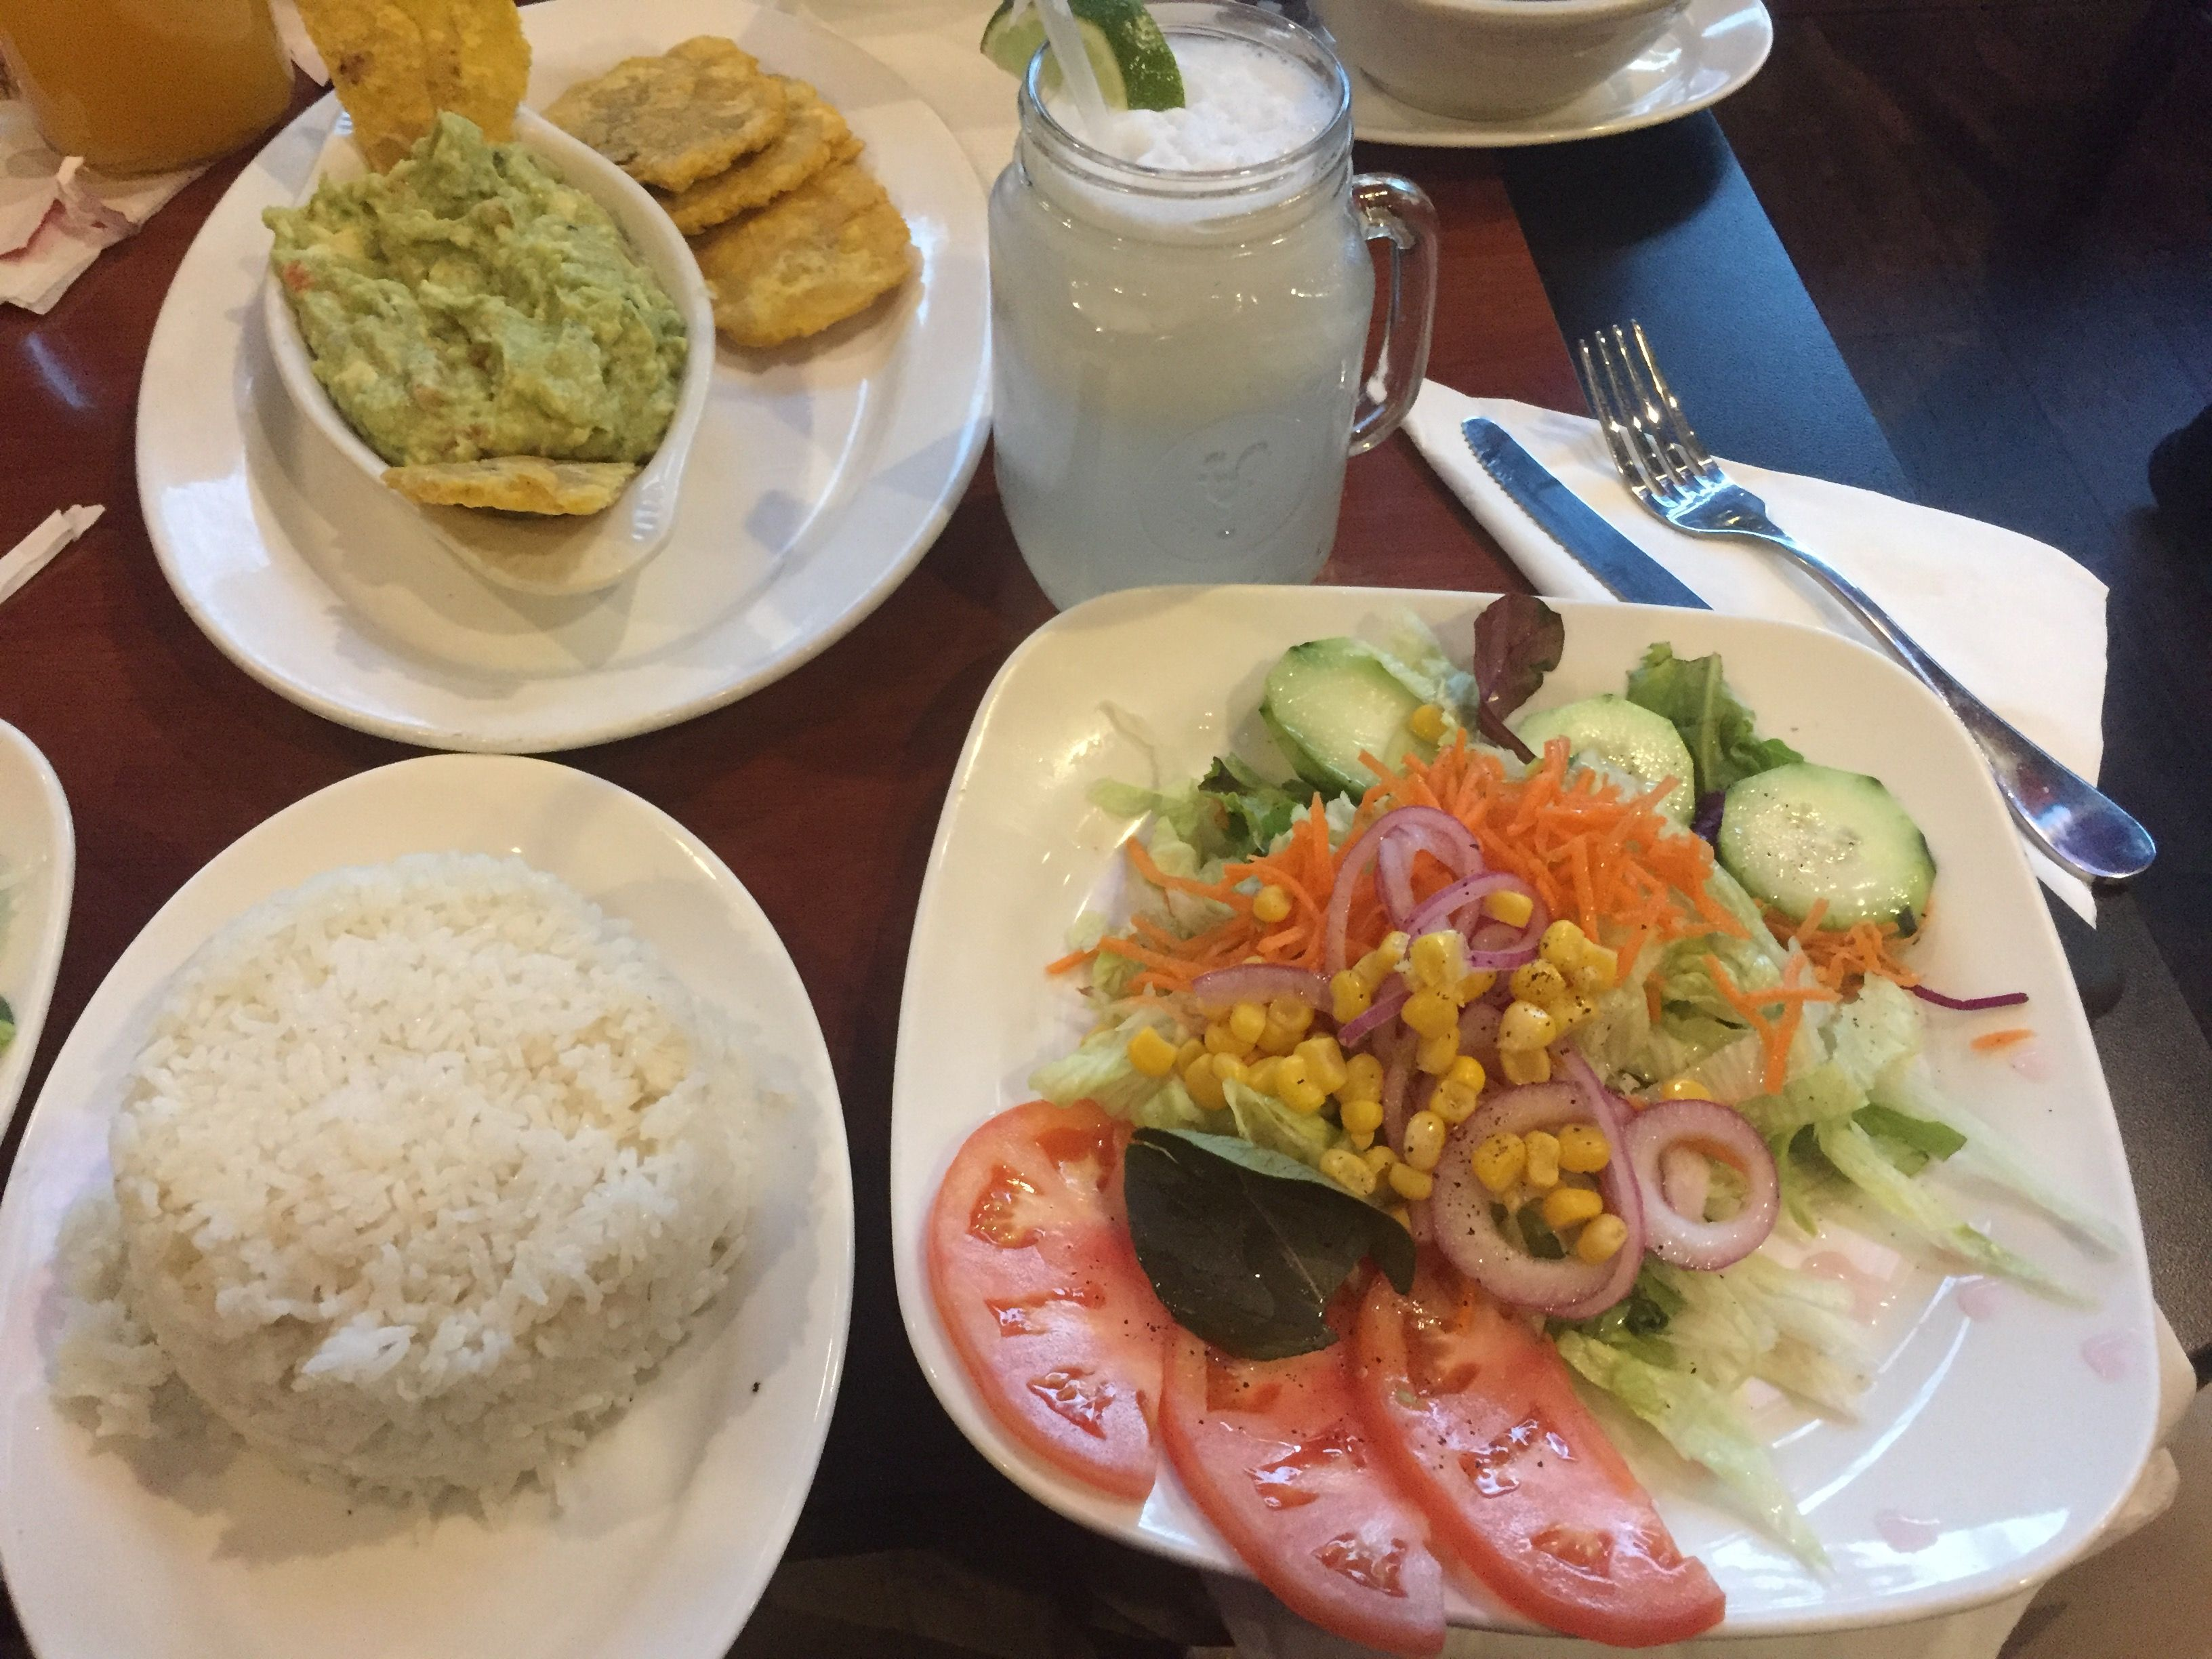 [I Ate] Colombian Dinner  Guacamole With Plantains House Salad